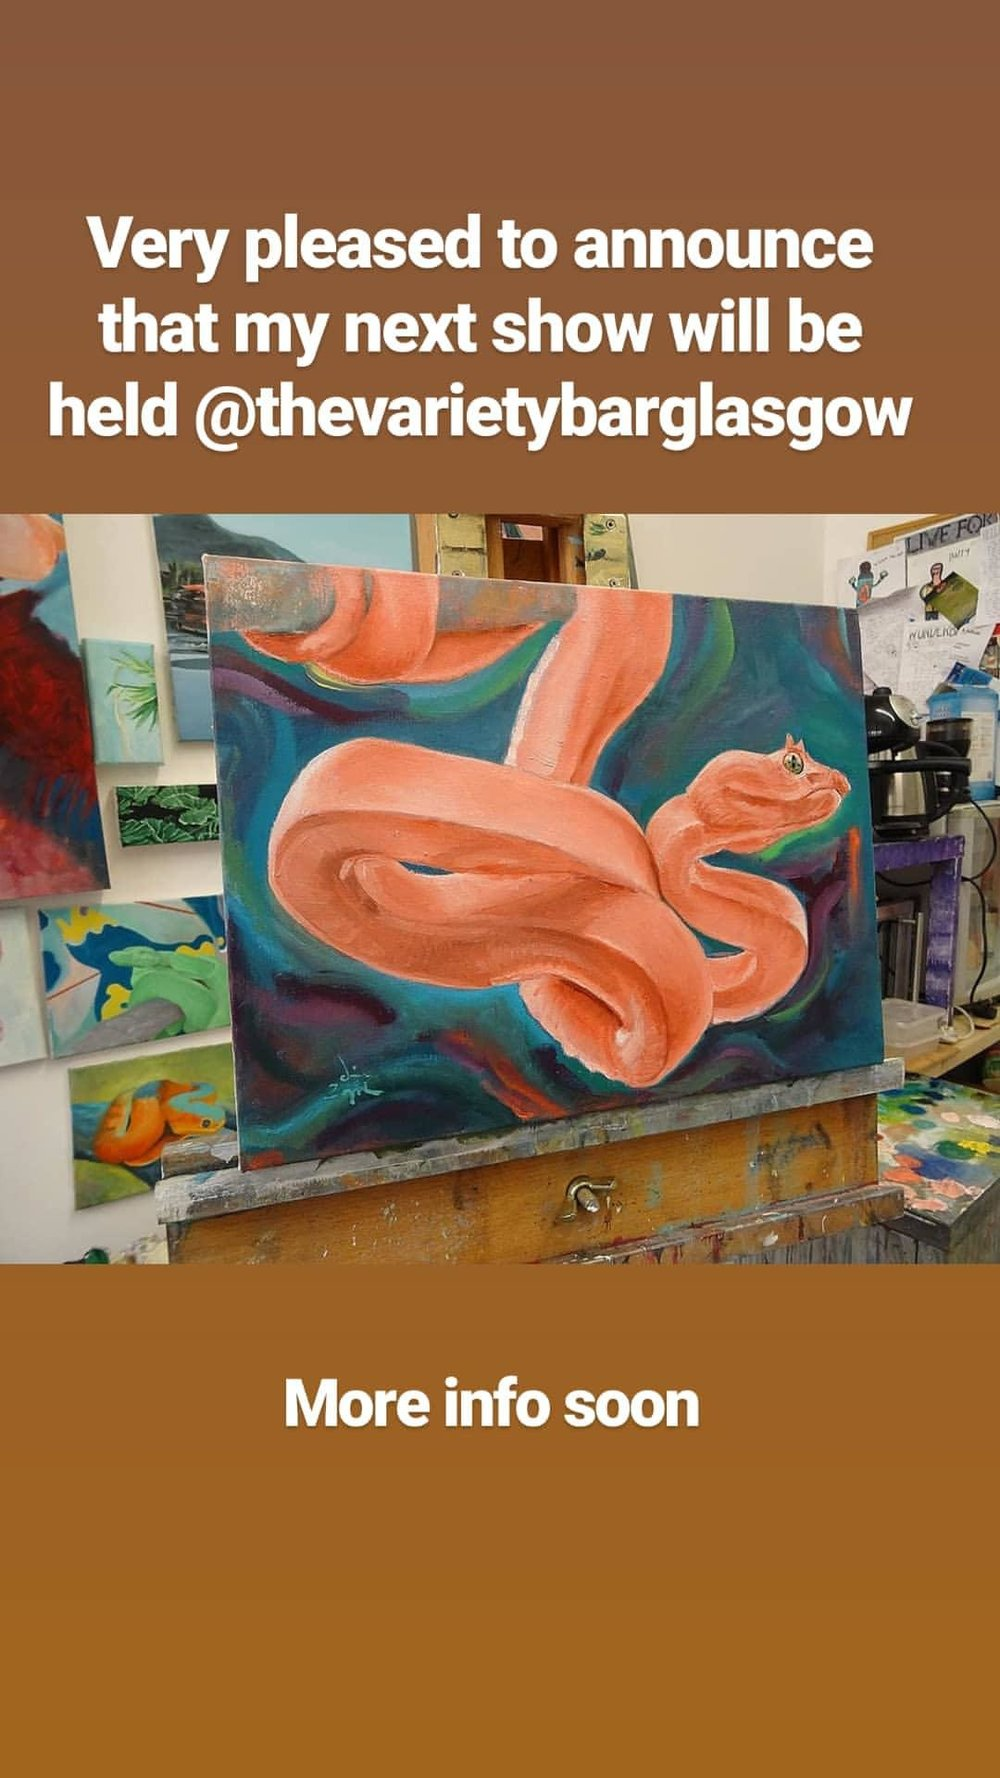 Primavera - I am pleased to announce that my new show will be held at The Variety Bar, Glasgow. This will be a solo exhibition celebrating coming into a new season.Opening night Thursday 21st march 2019 Exhibition running dates: 22nd March 2019 - 22nd April 2019The Variety Bar 401 Sauchiehall Street, Glasgow